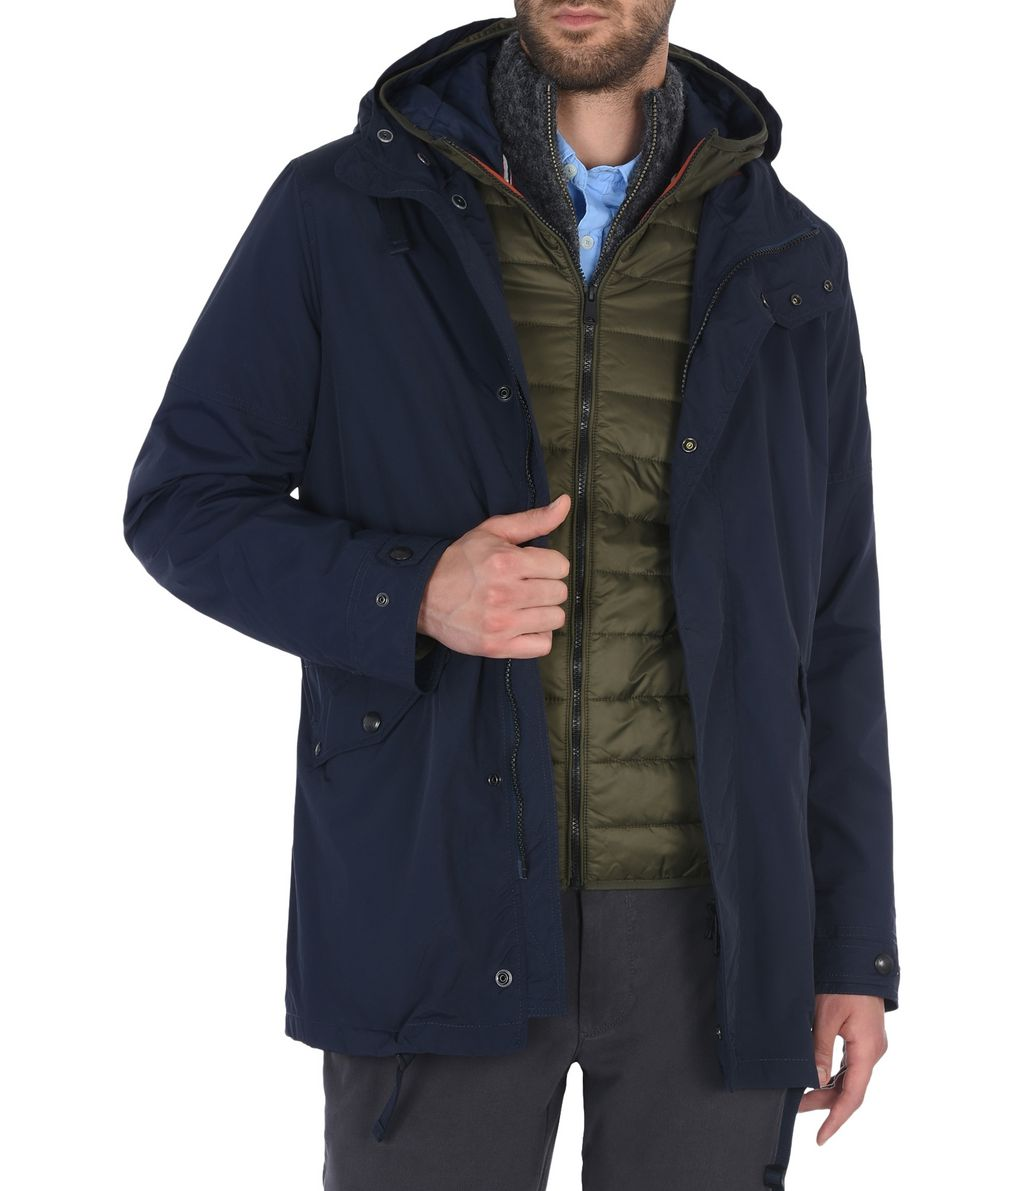 NAPAPIJRI ANNONAY 3IN1 MAN PARKA,DARK BLUE